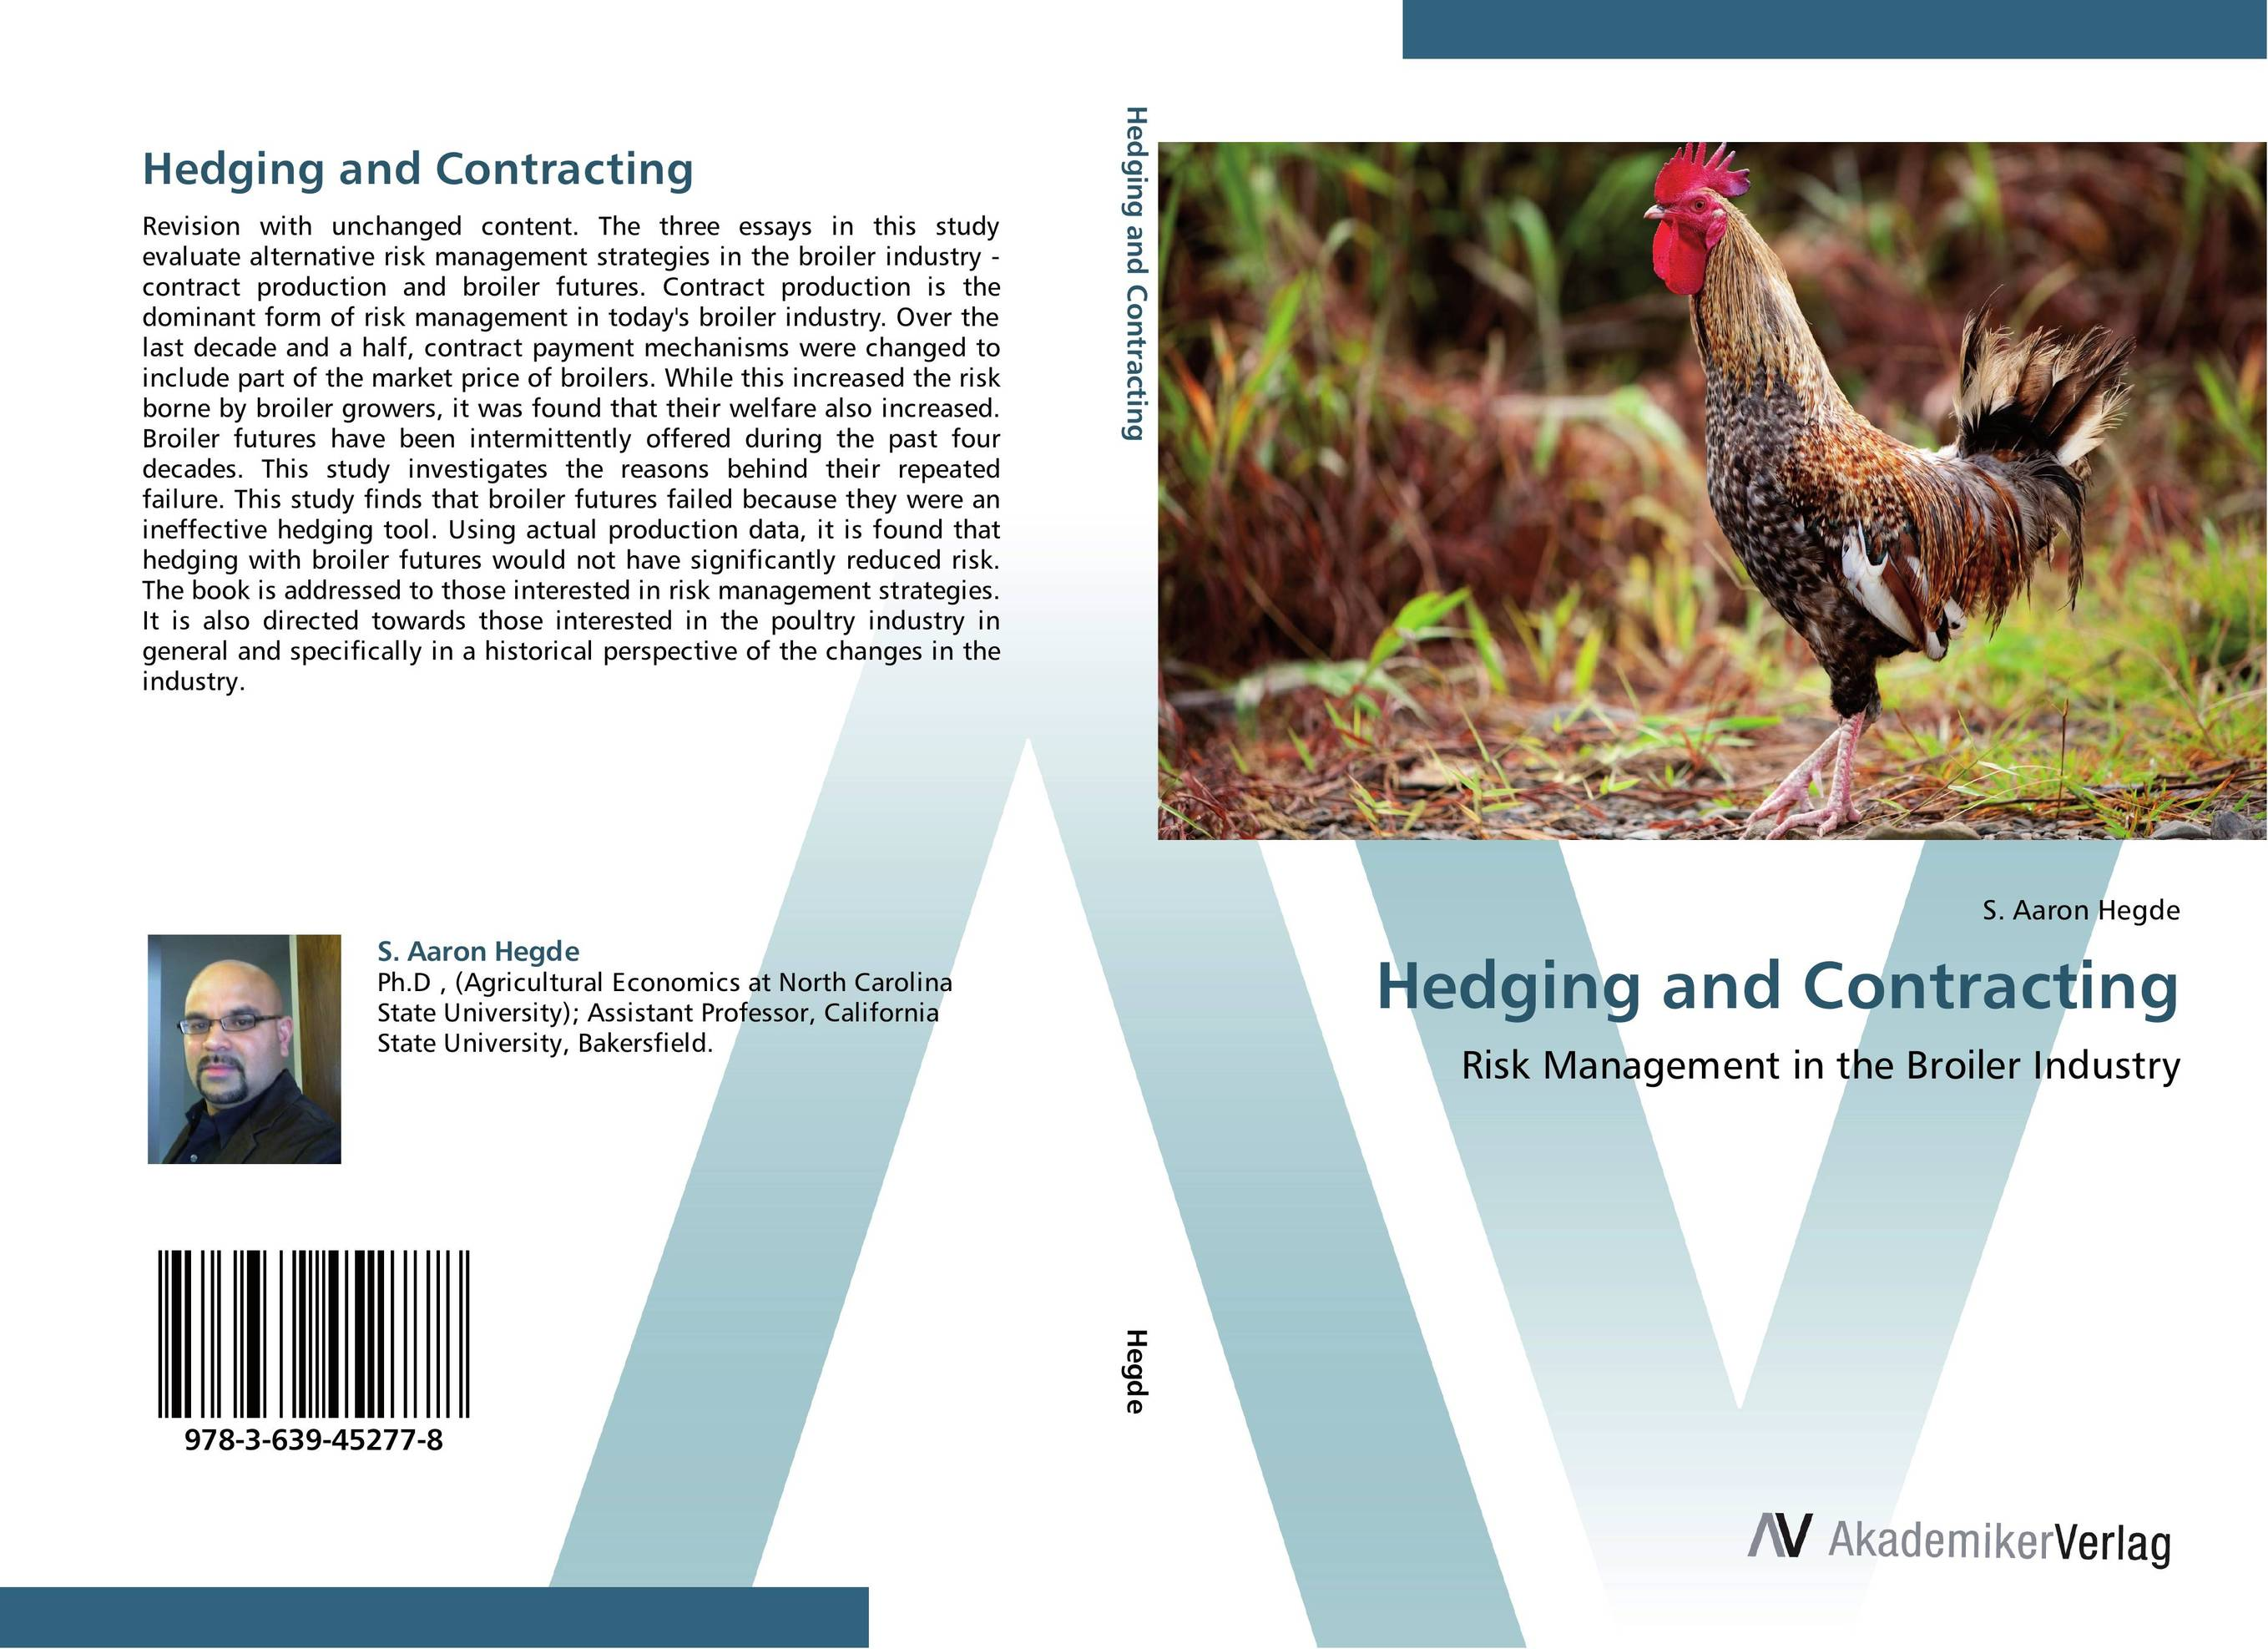 Hedging and Contracting vishnu gajjala n fuel hedging and risk management strategies for airlines shippers and other consumers